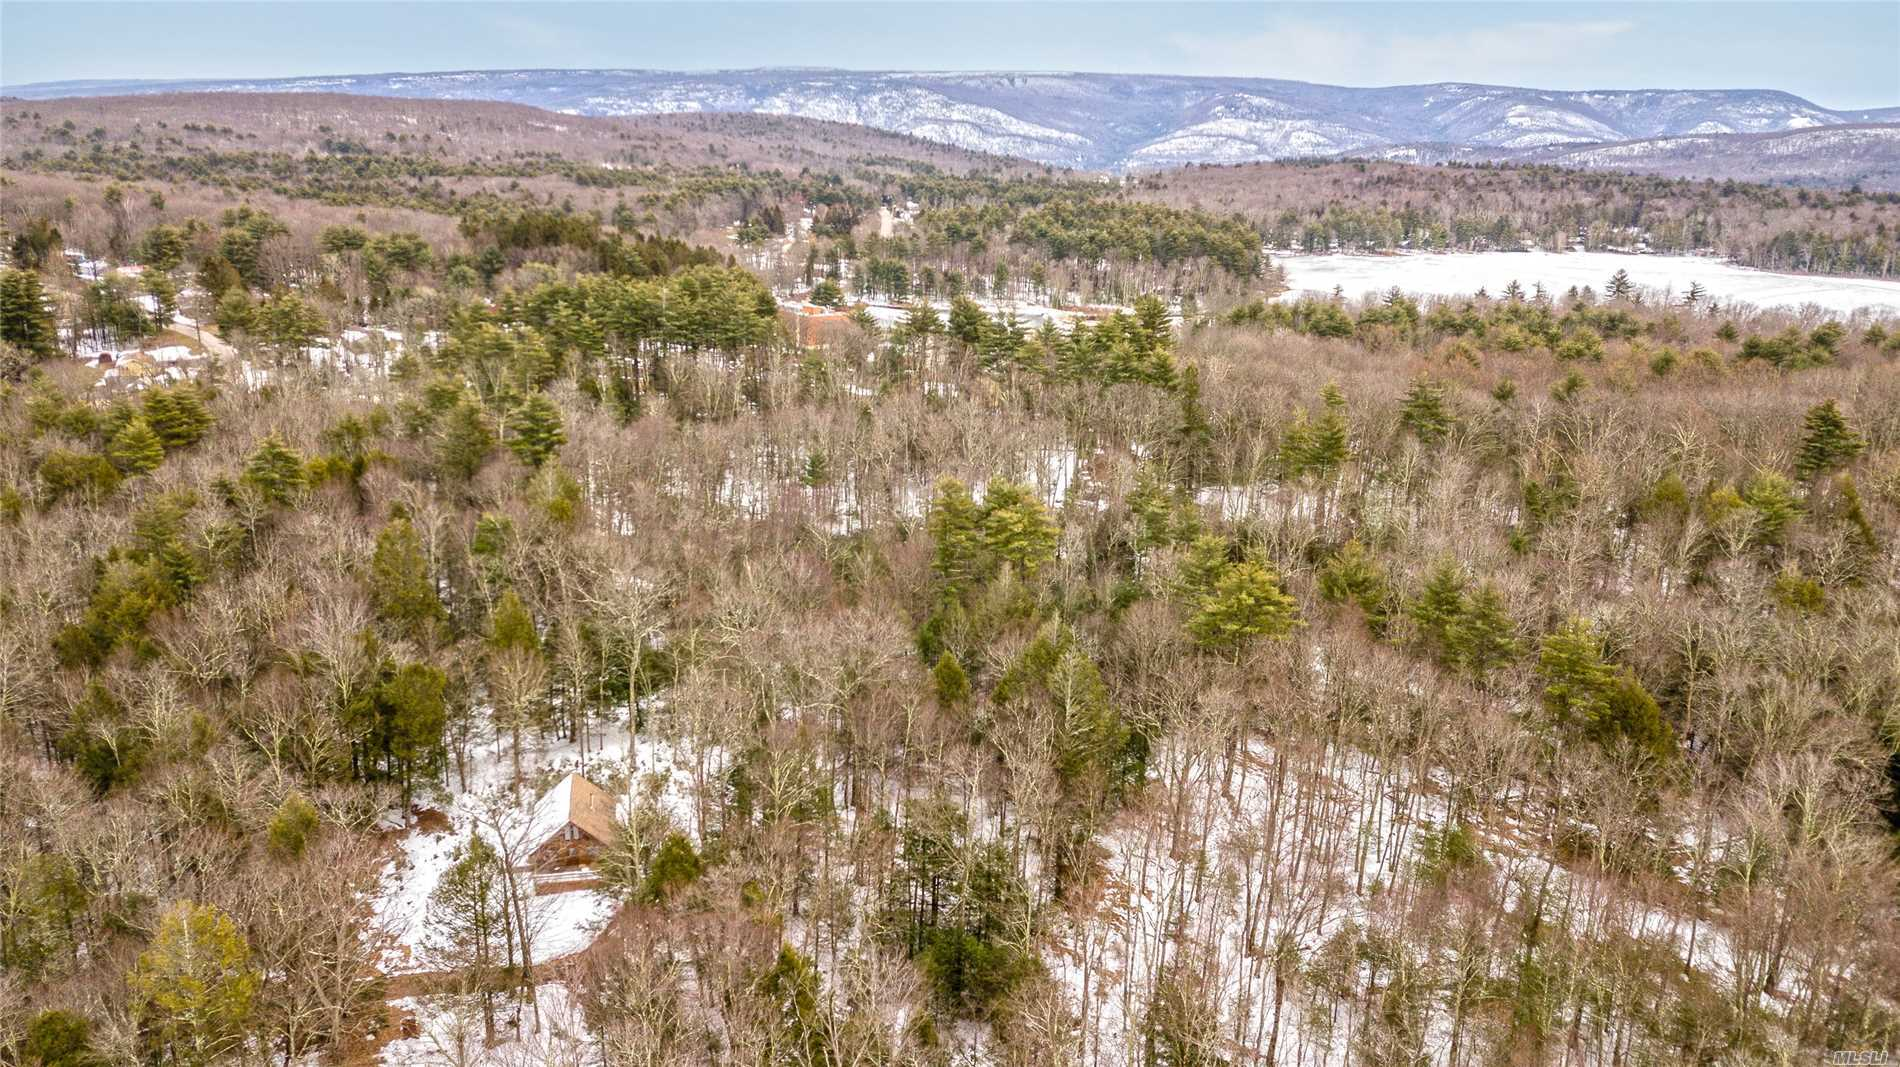 Tbd Ulster Heights Rd Ellenville, NY 12428